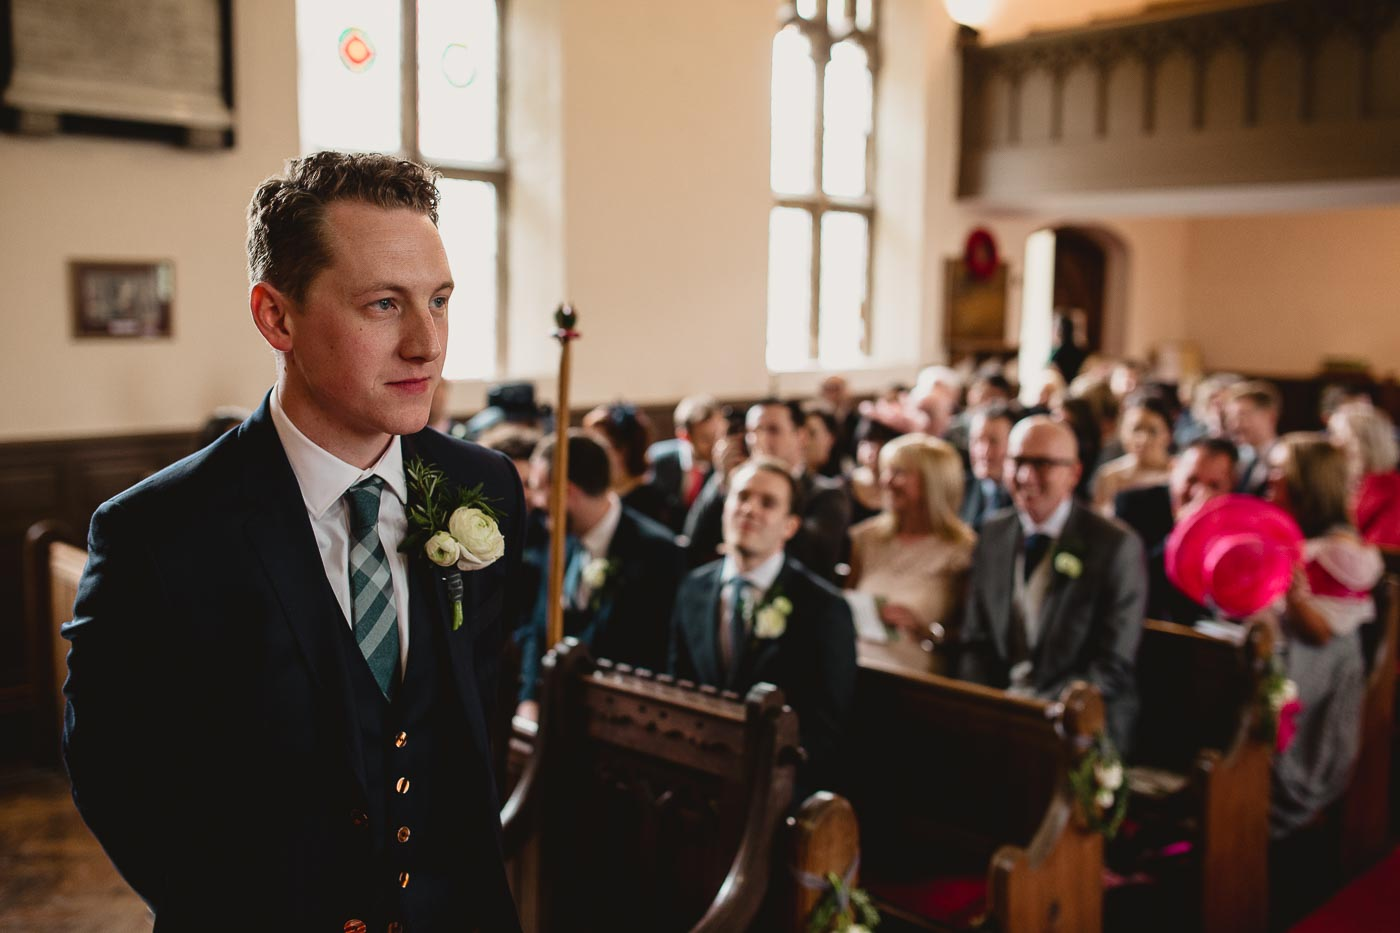 Groom waiting for bride in church, Natural wedding moments